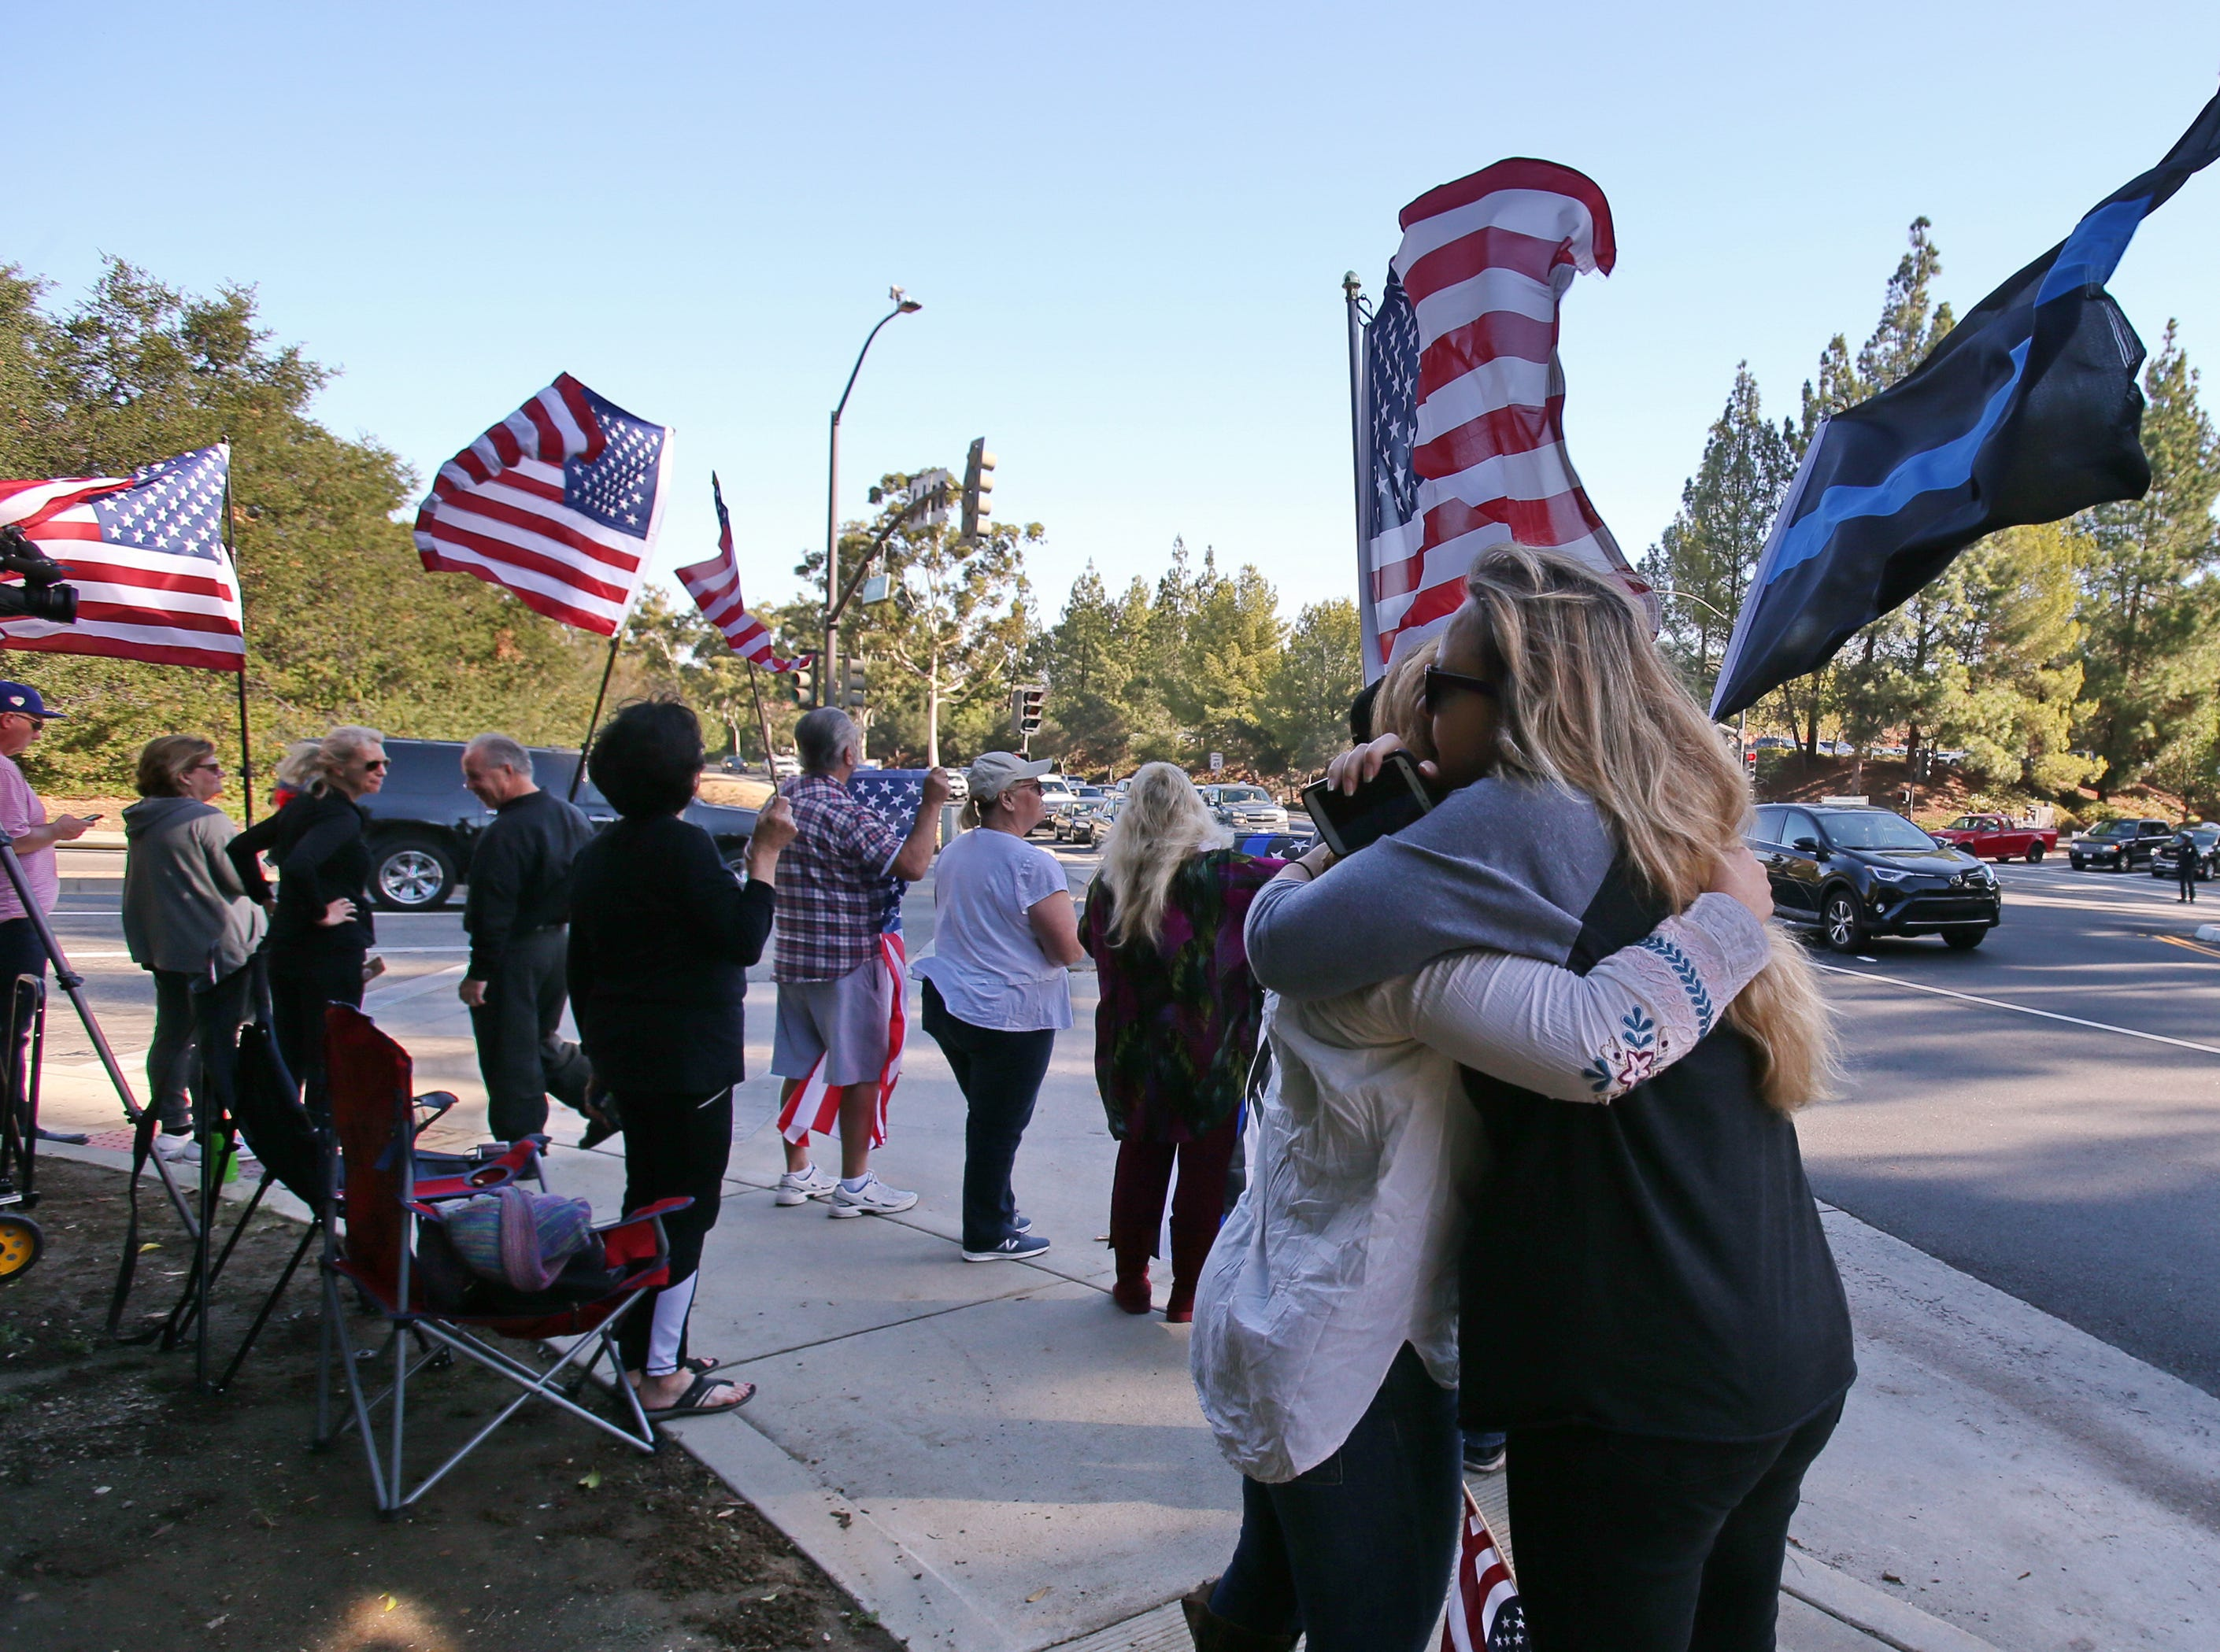 Deanna Ochoa (right) and Jennifer Smith greets each other with a hug as they wait for the procession for Ventura County Sheriff Sgt. Ron Helus to start Thursday. Helus was killed inside the Borderline Bar and Grill in Thousand Oaks late Wednesday, when 13 people died including the gunman in a mass shooting.